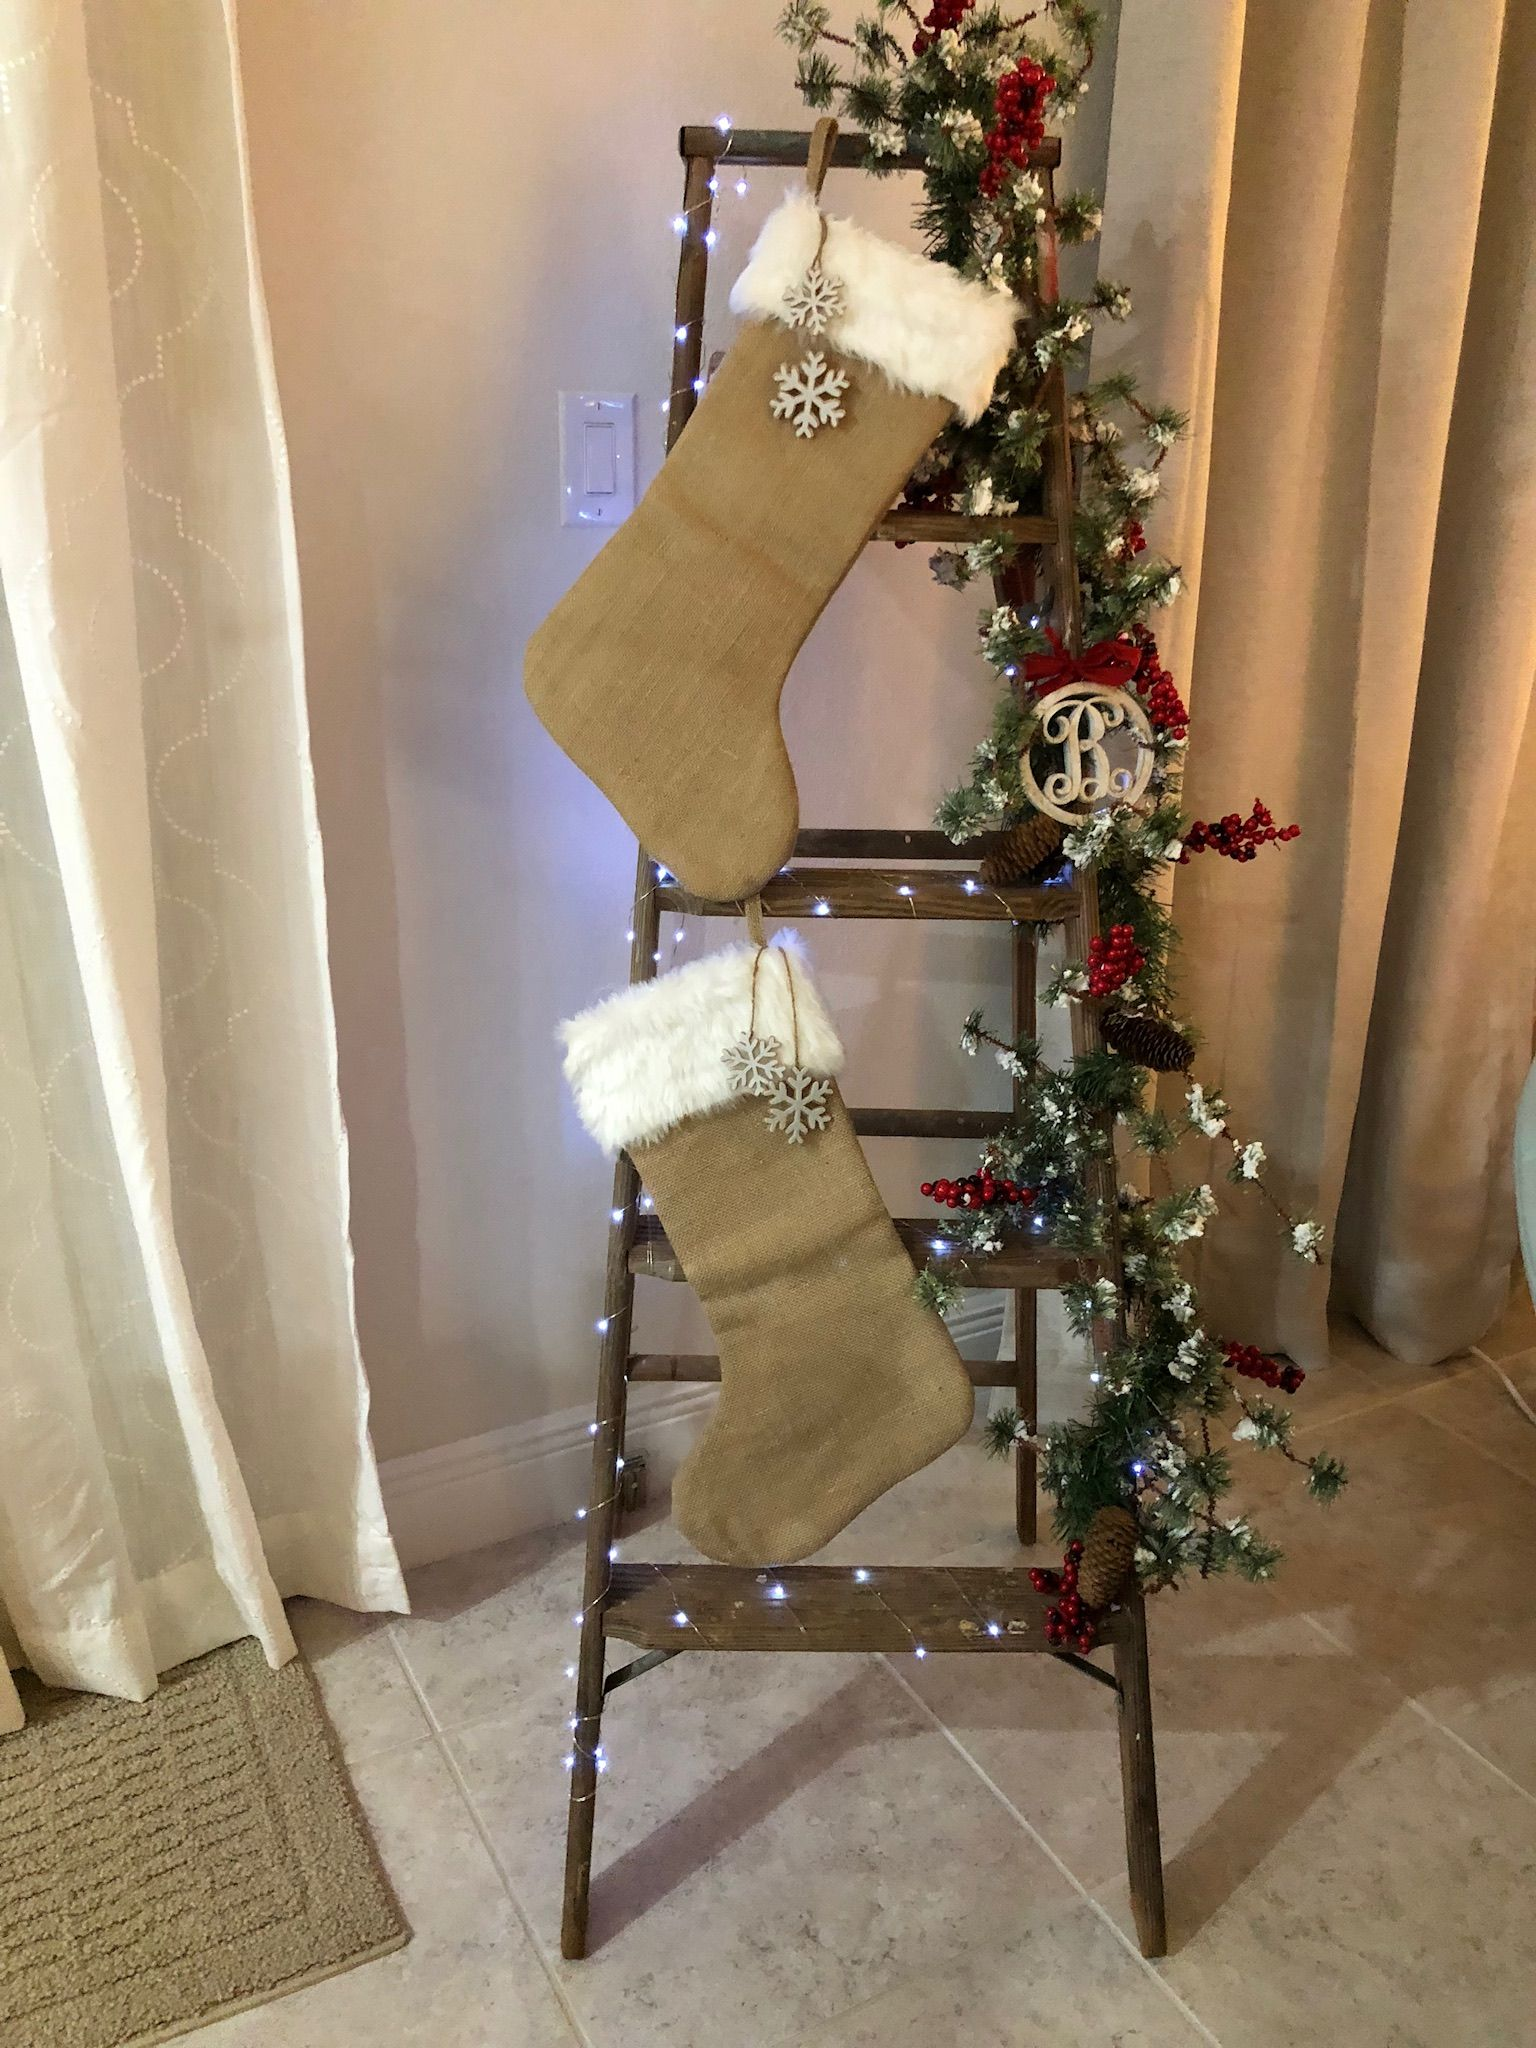 Dads Old Ladder Miss You Dad Ladder Christmas Tree Christmas Decorations Christmas Diy